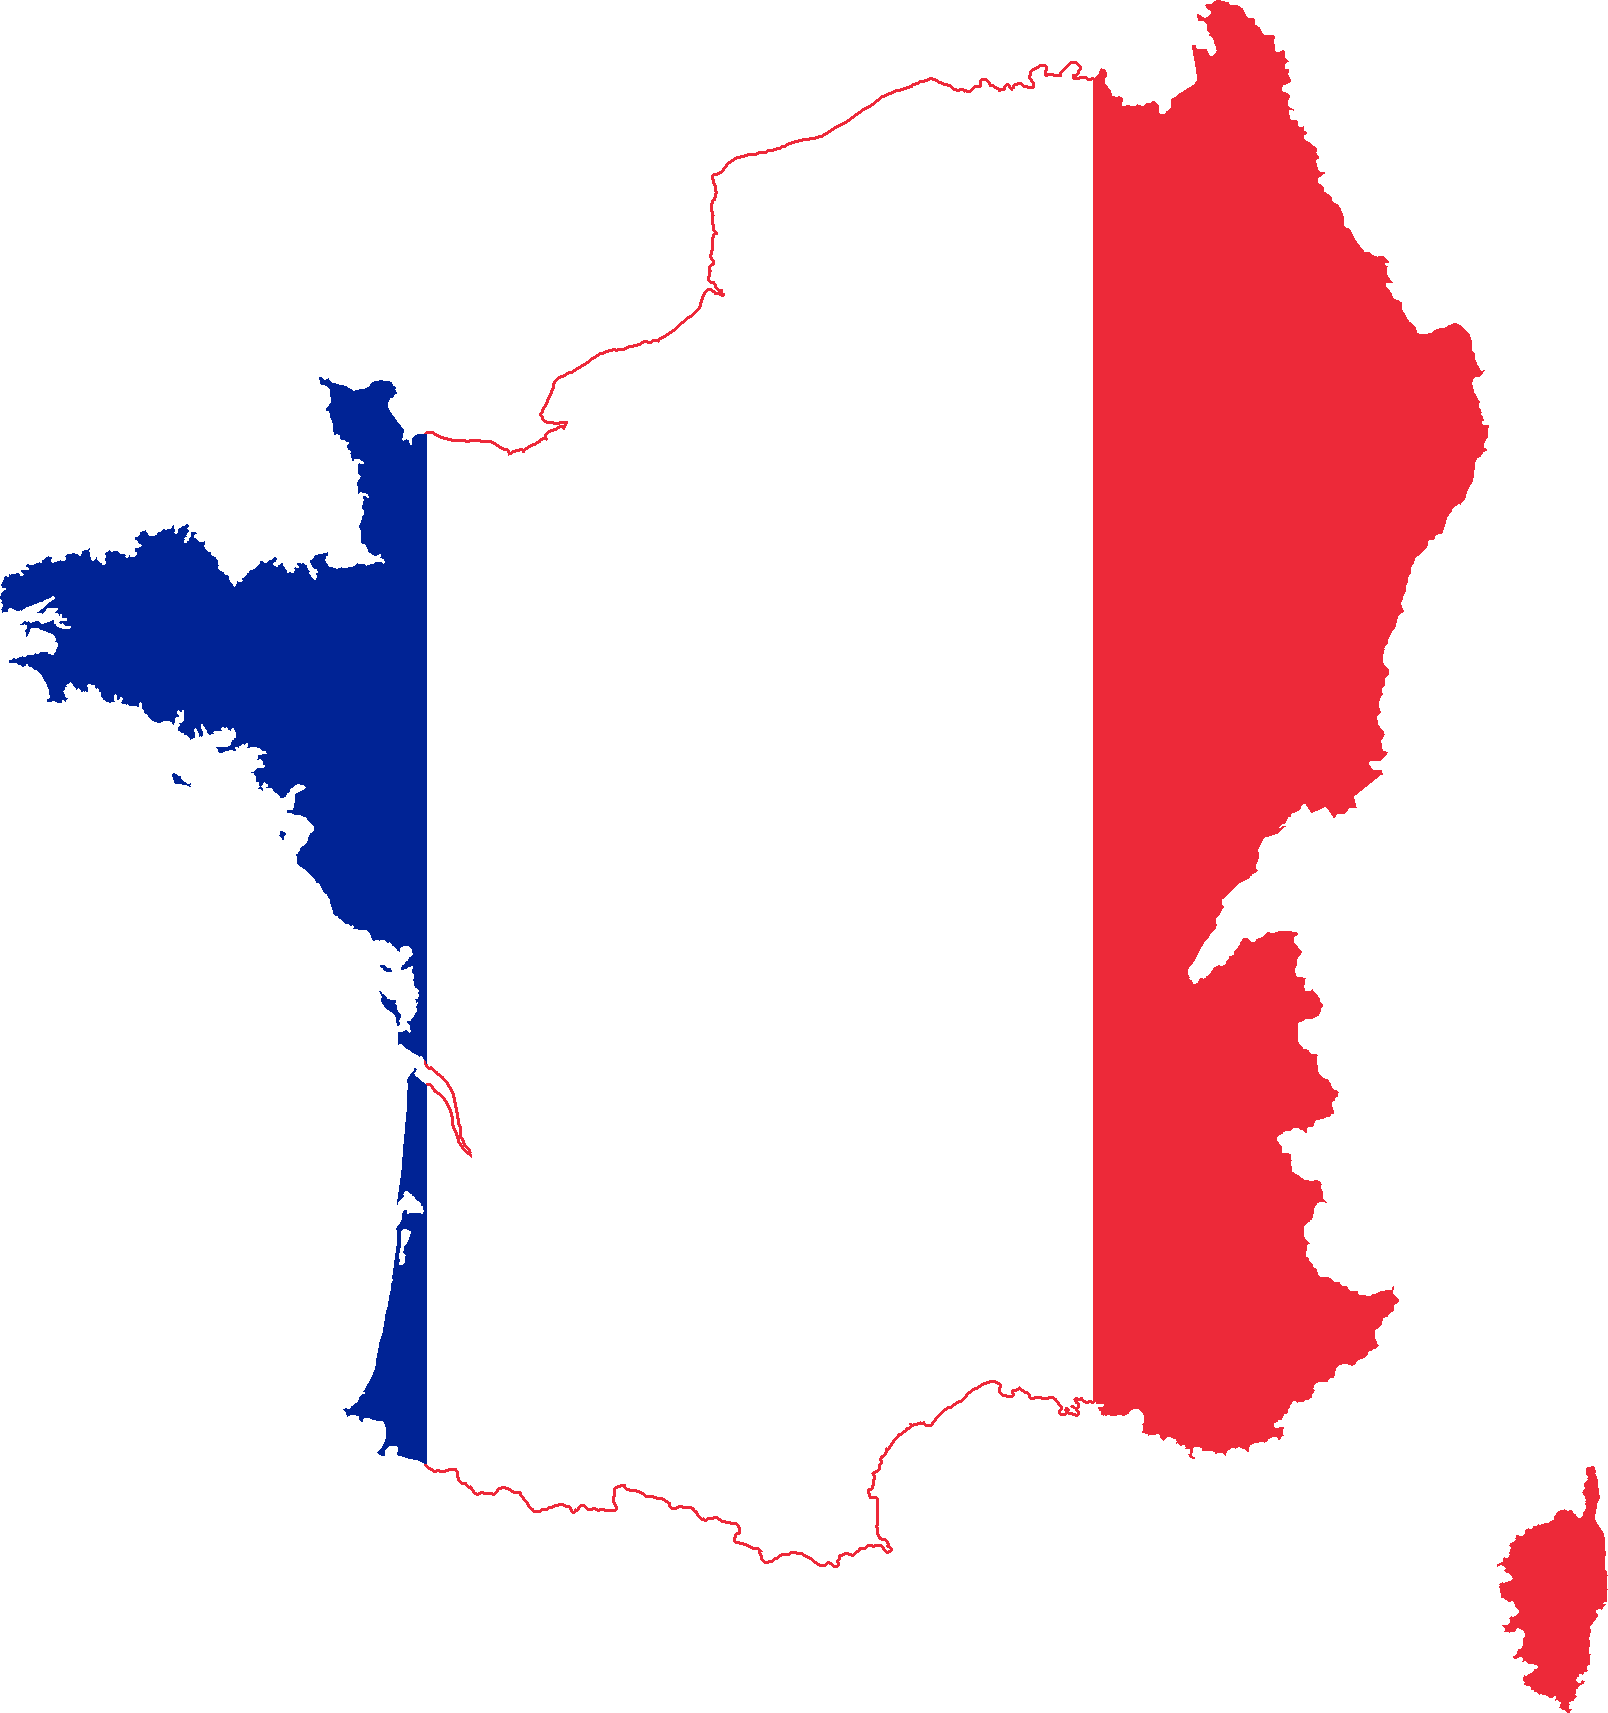 France map png - French intellectual property office ...